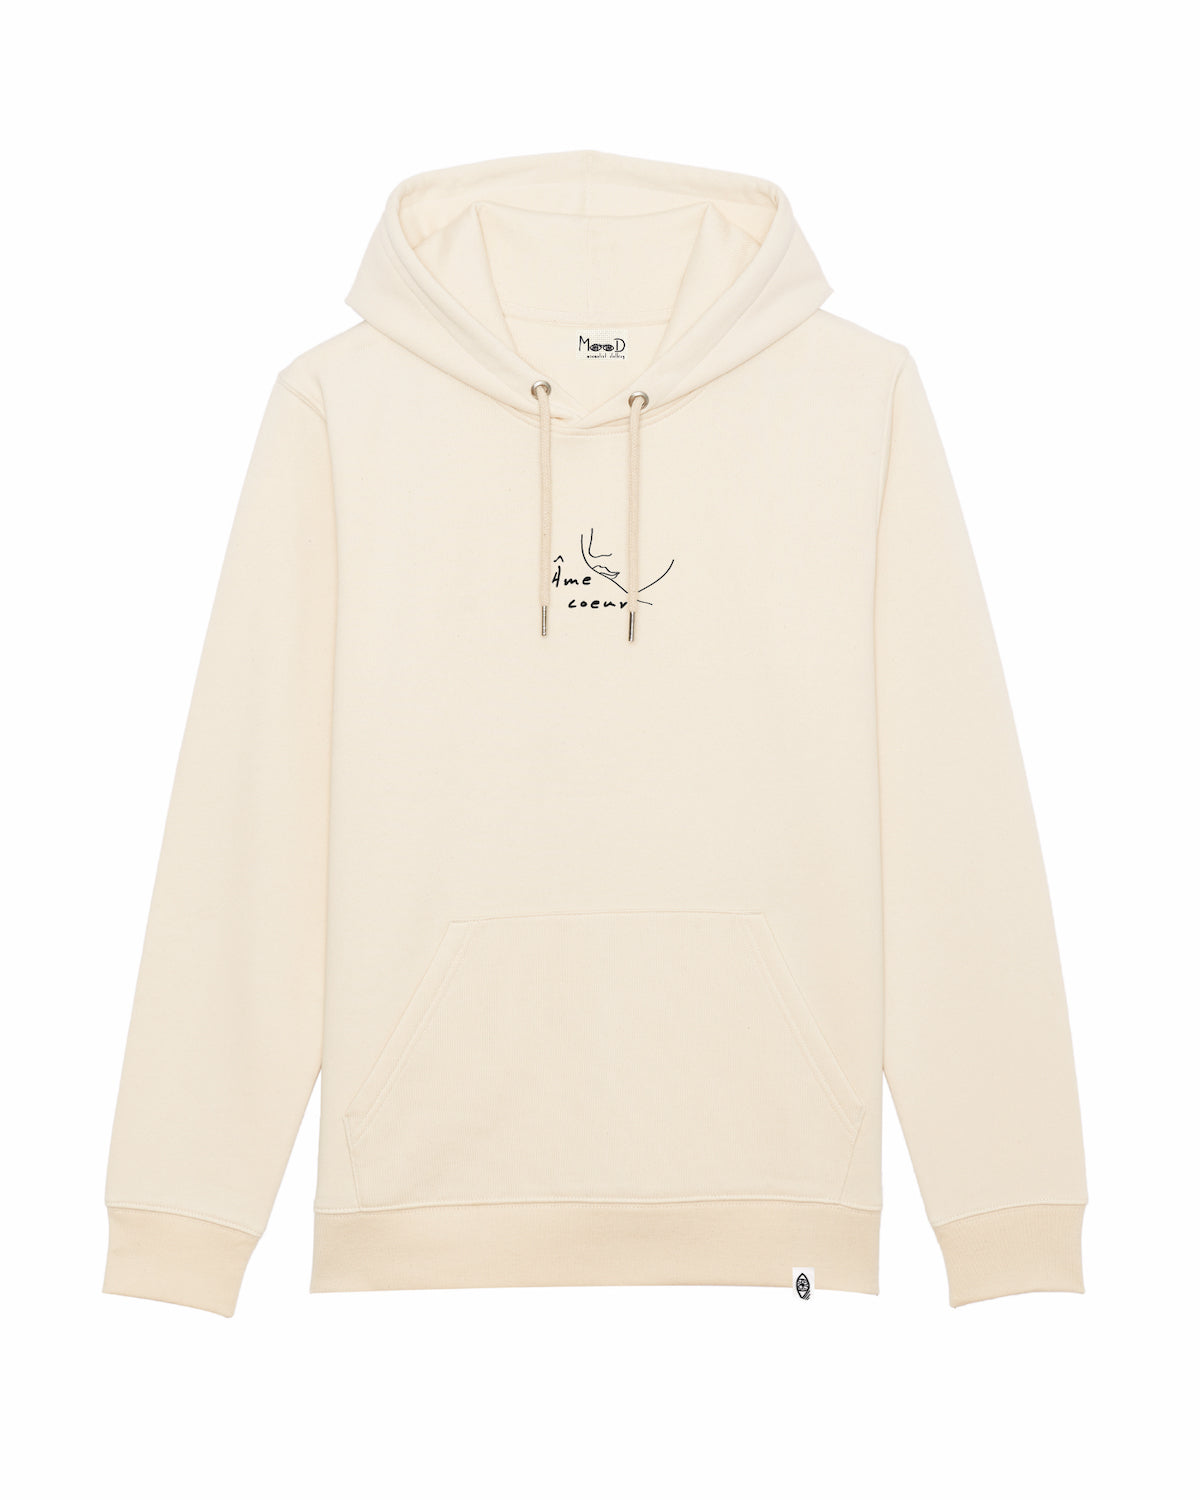 Hoodie natural white - Âme coeur - Mood Clothing